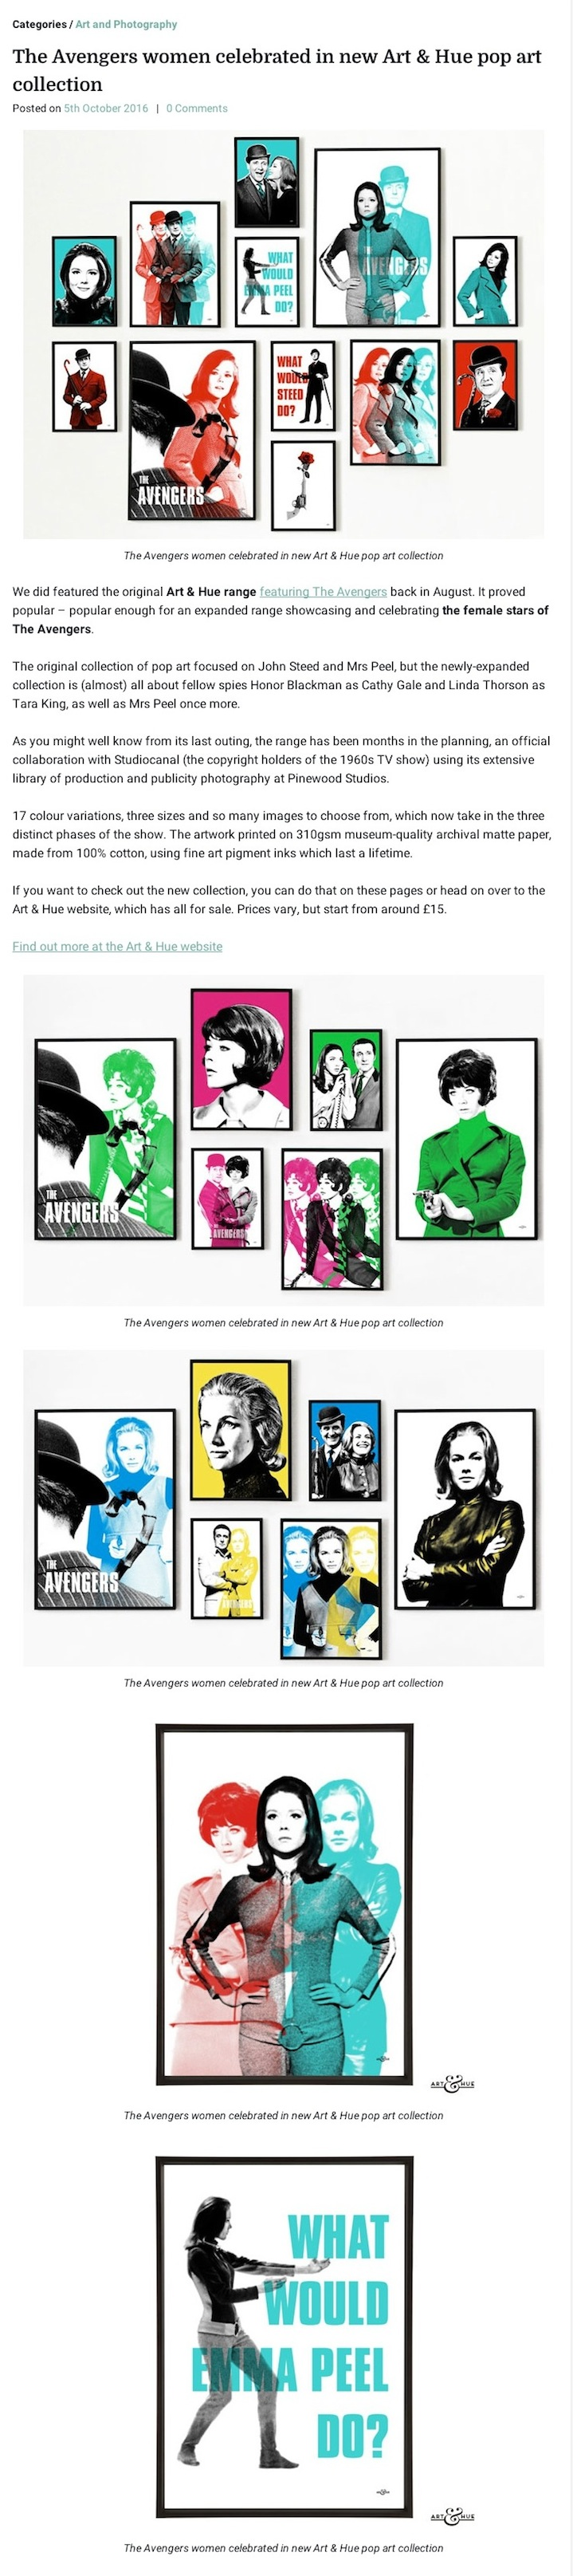 Art & Hue's official pop art range featuring The Avengers women is now available to buy.